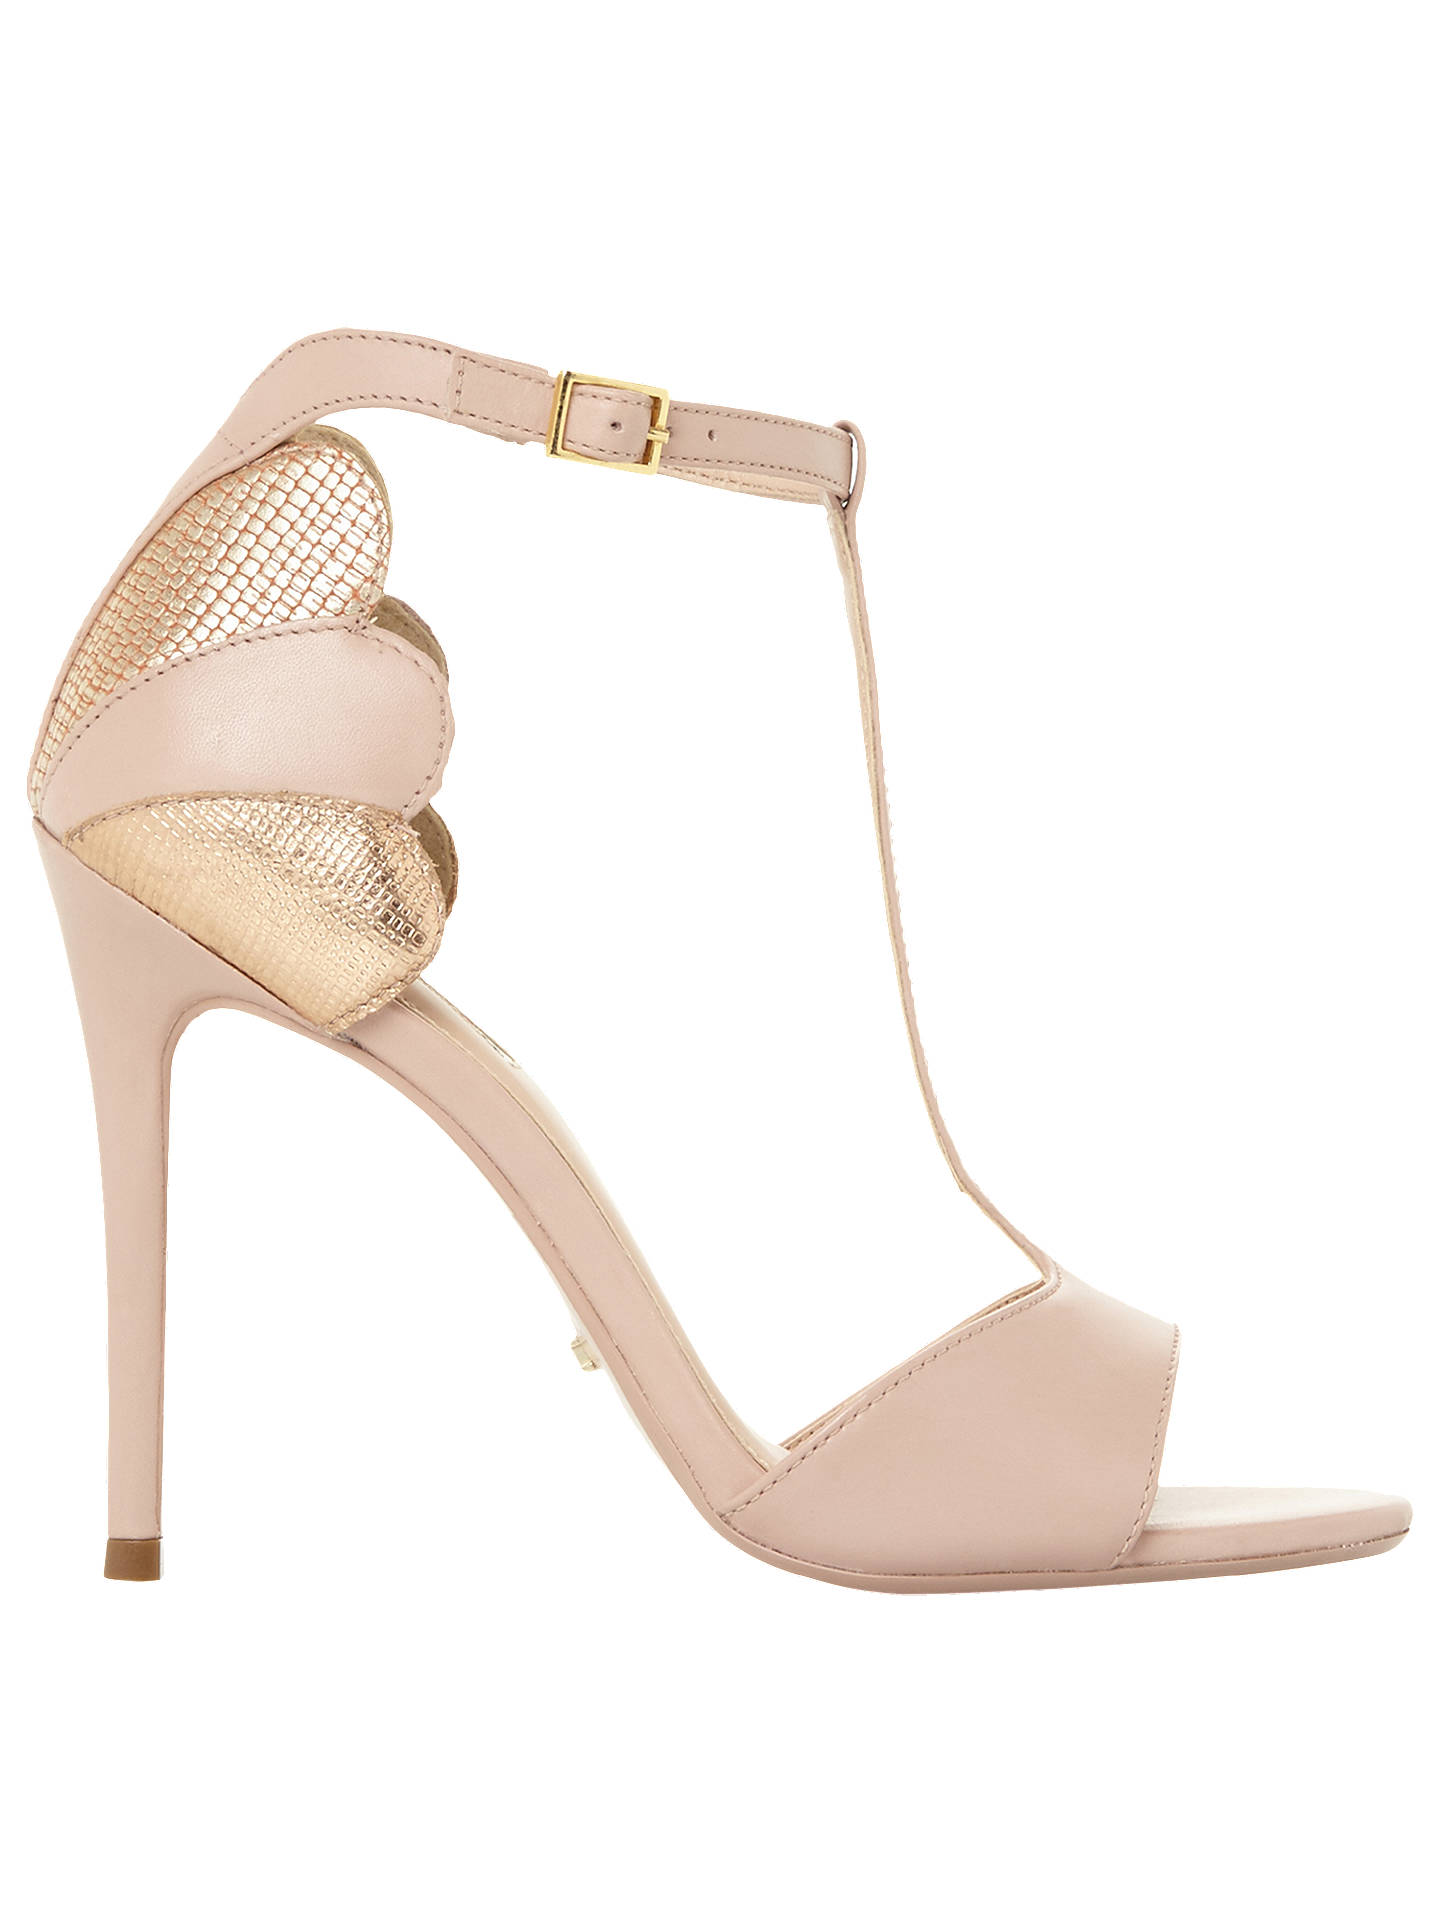 Dune Mythos T Bar Open Toe Sandals at John Lewis & Partners